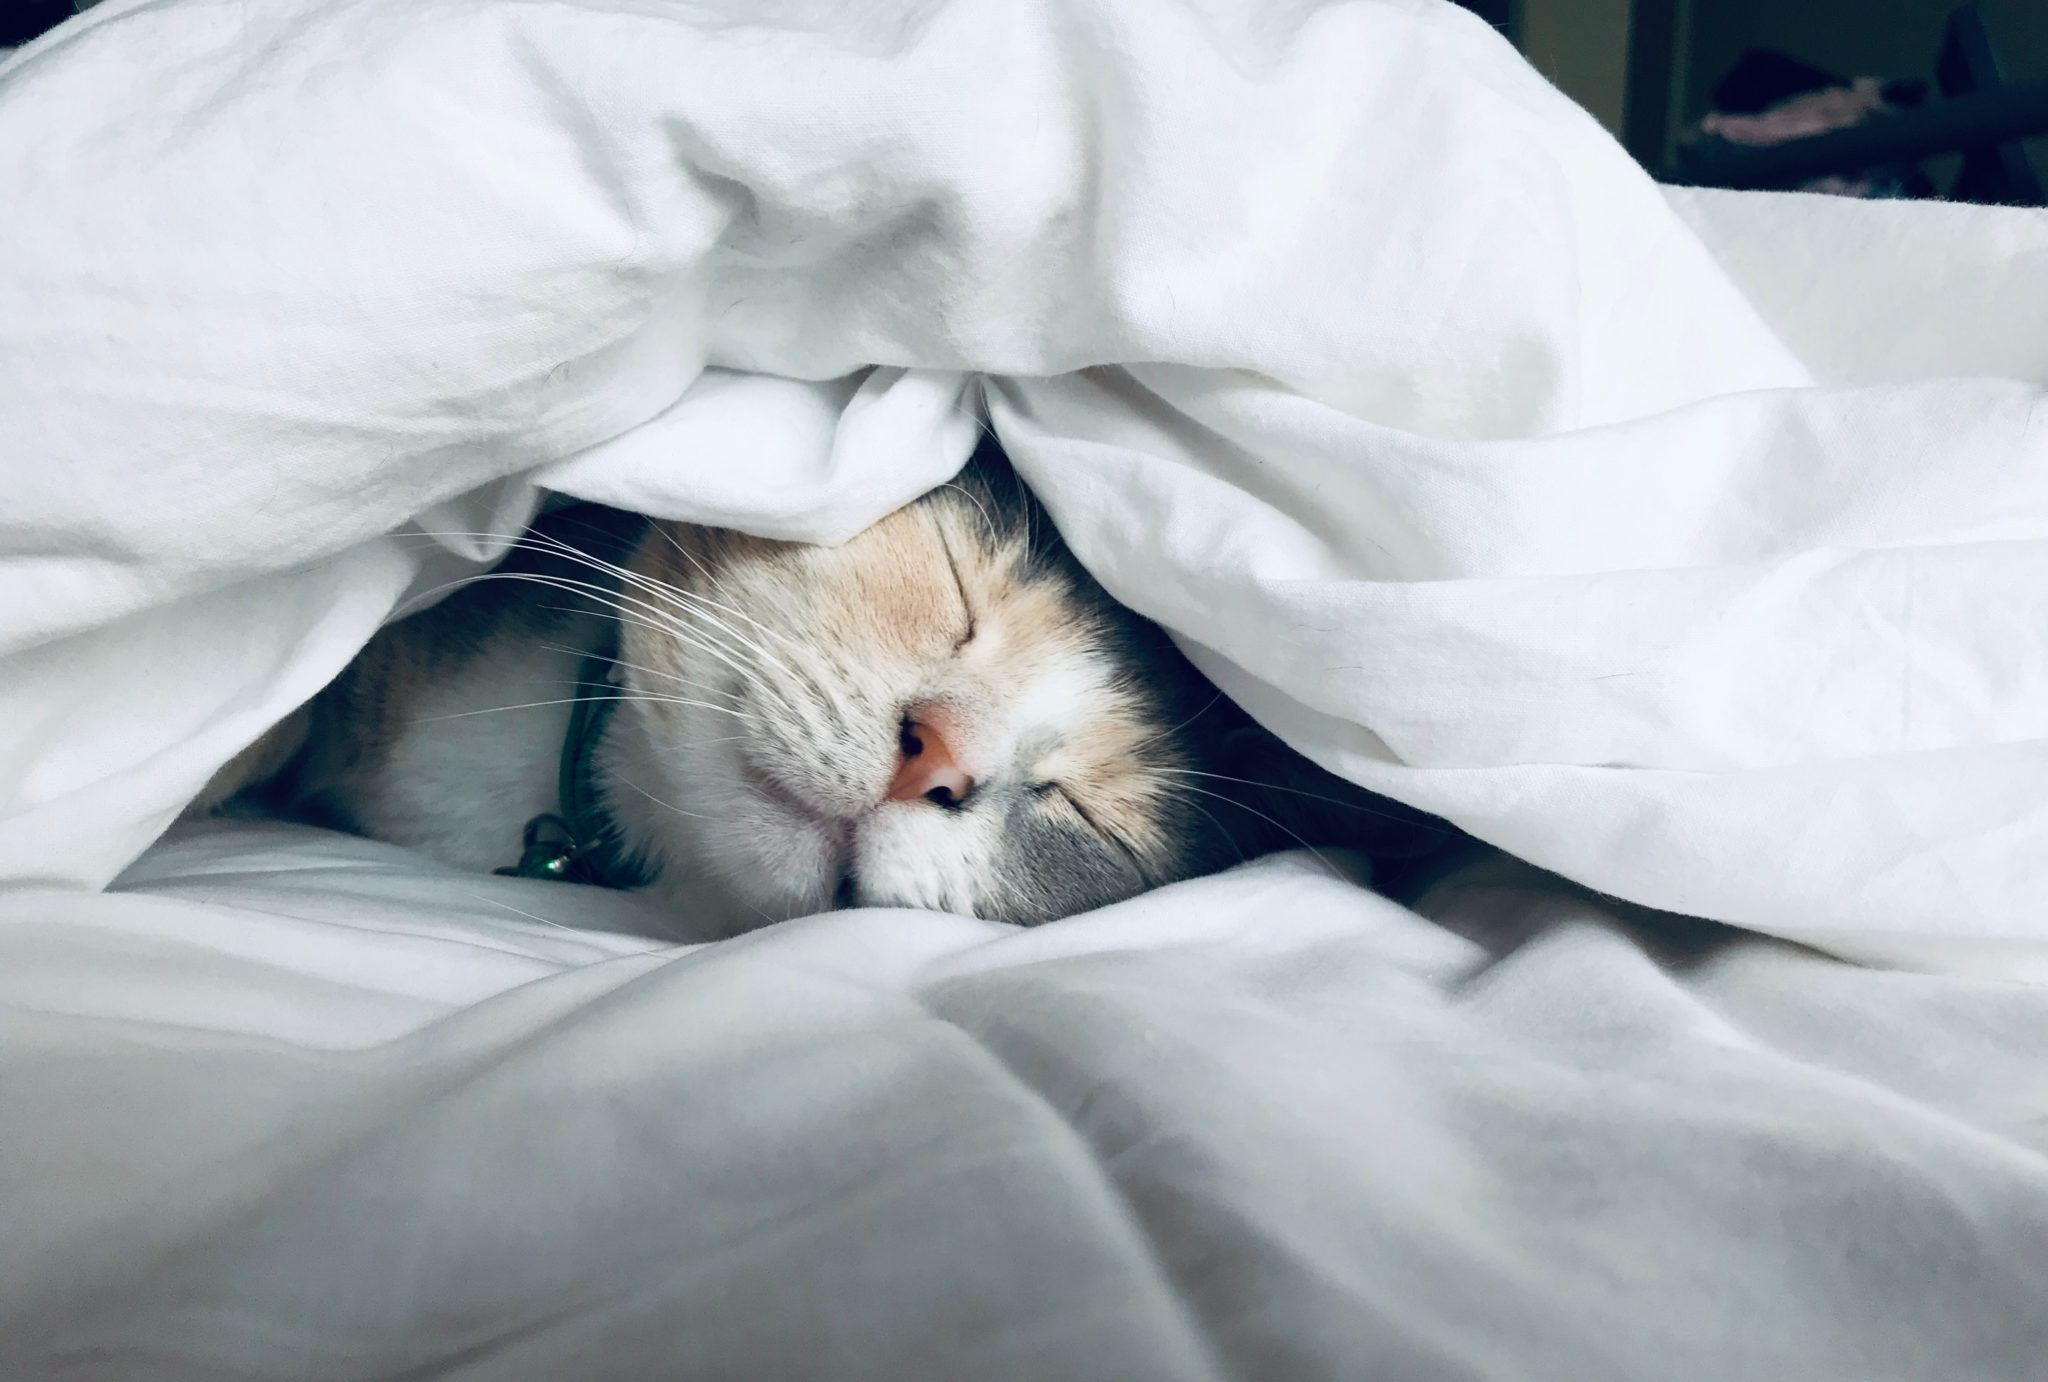 image of cat sleeping under white bedsheets